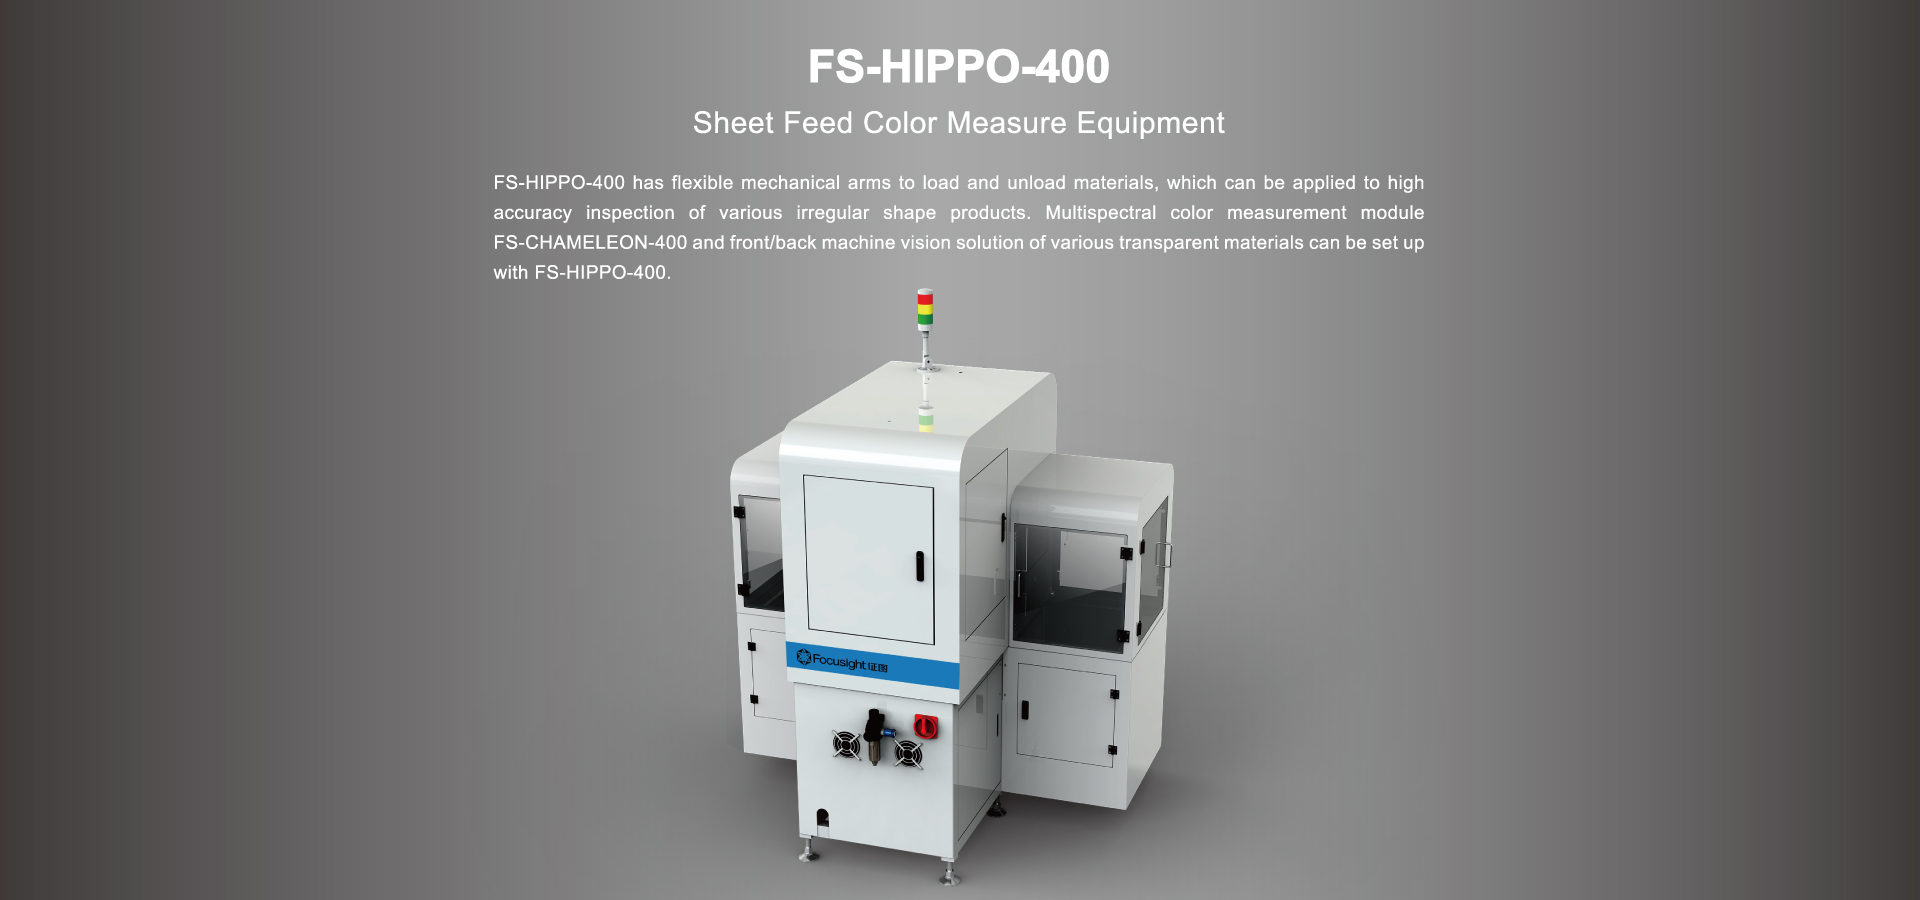 FS-HIPPO-400 Sheet Feed Color Measure Equipment - Cigarette